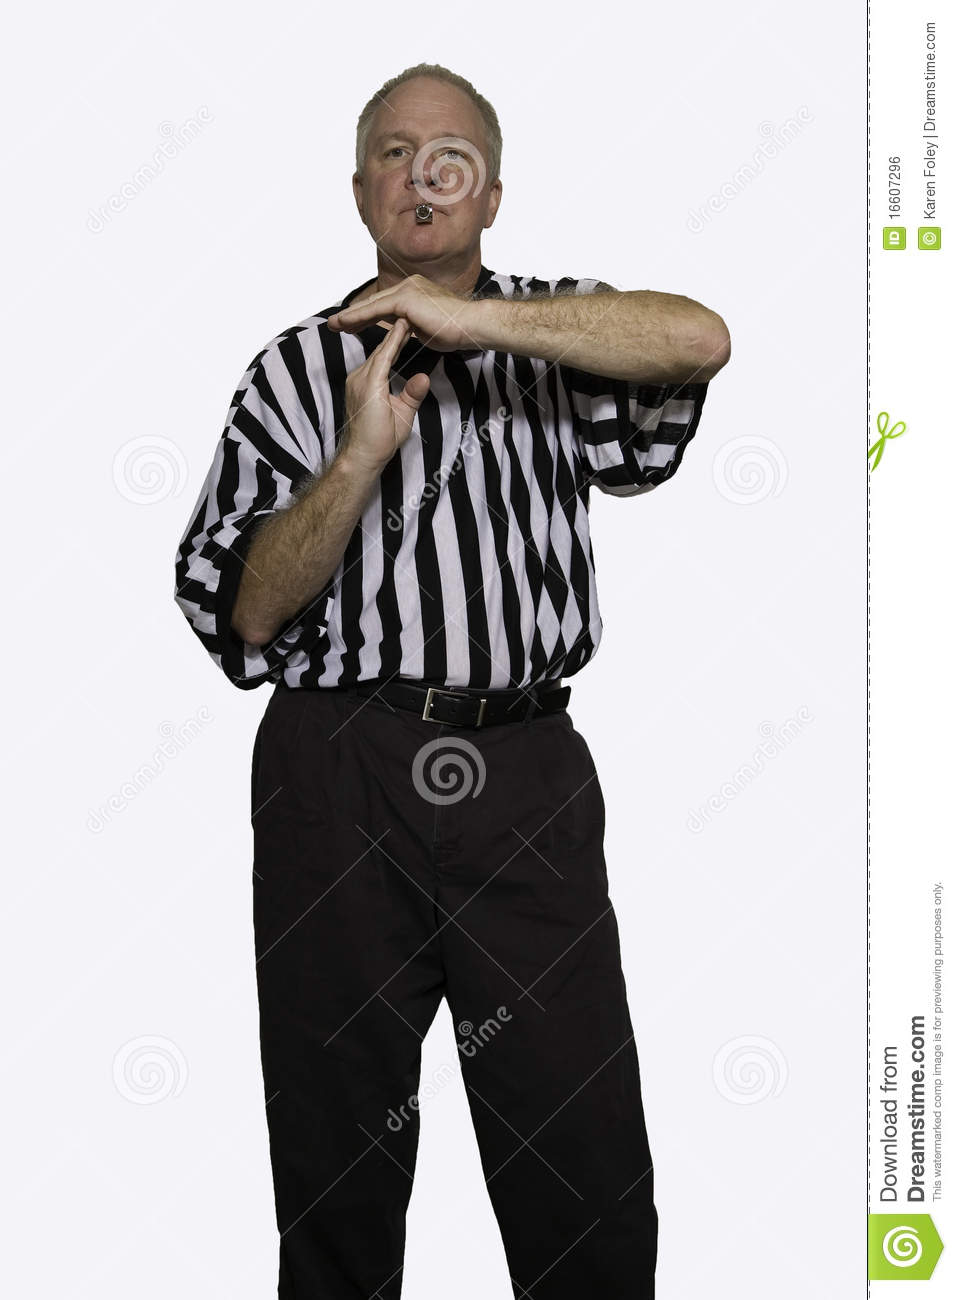 royalty free stock image technical foul image 16607296